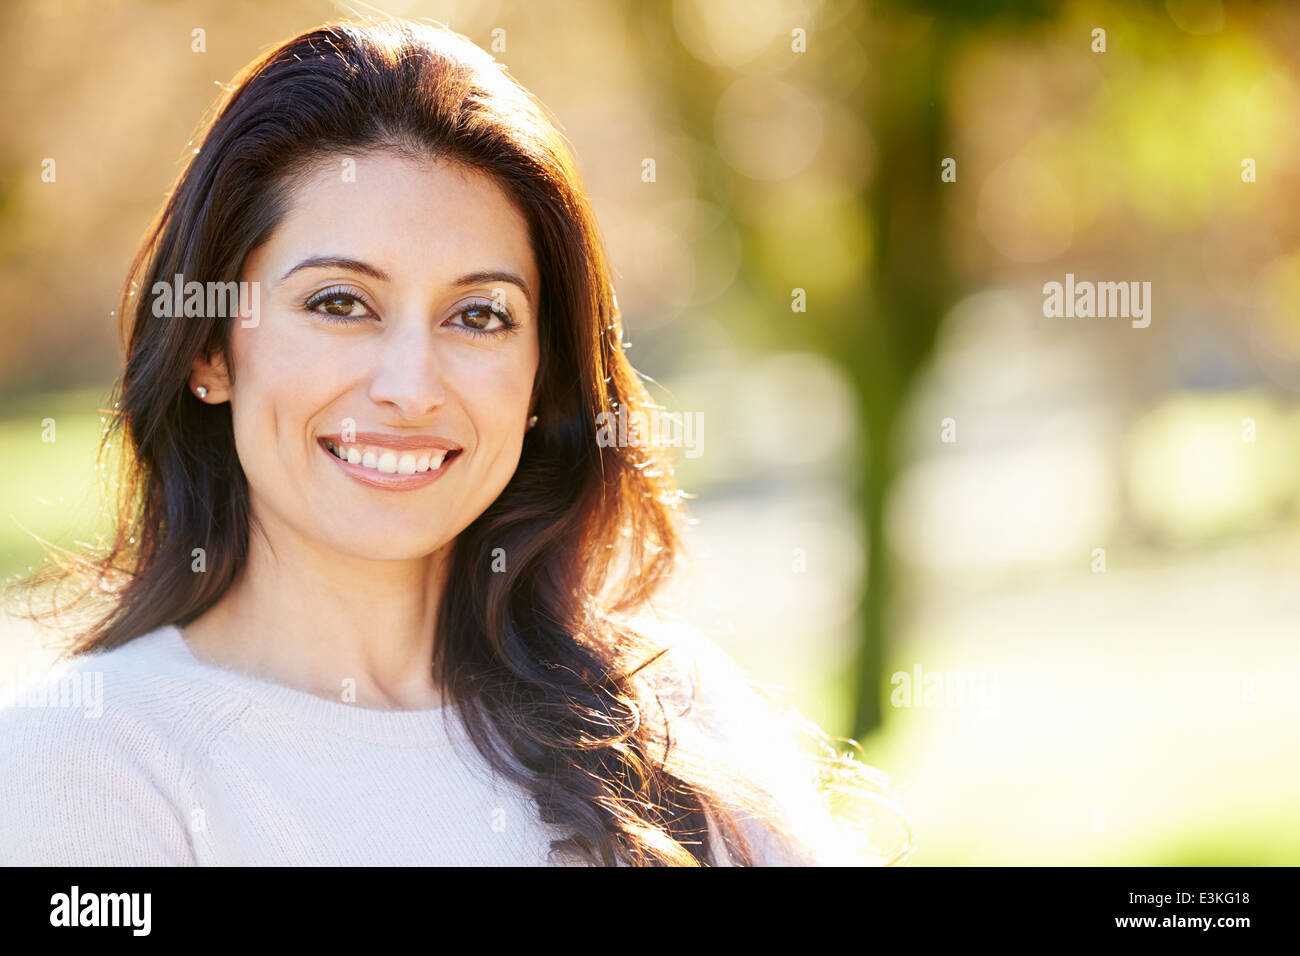 Portrait Of Attractive Hispanic Woman In Countryside - Stock Image